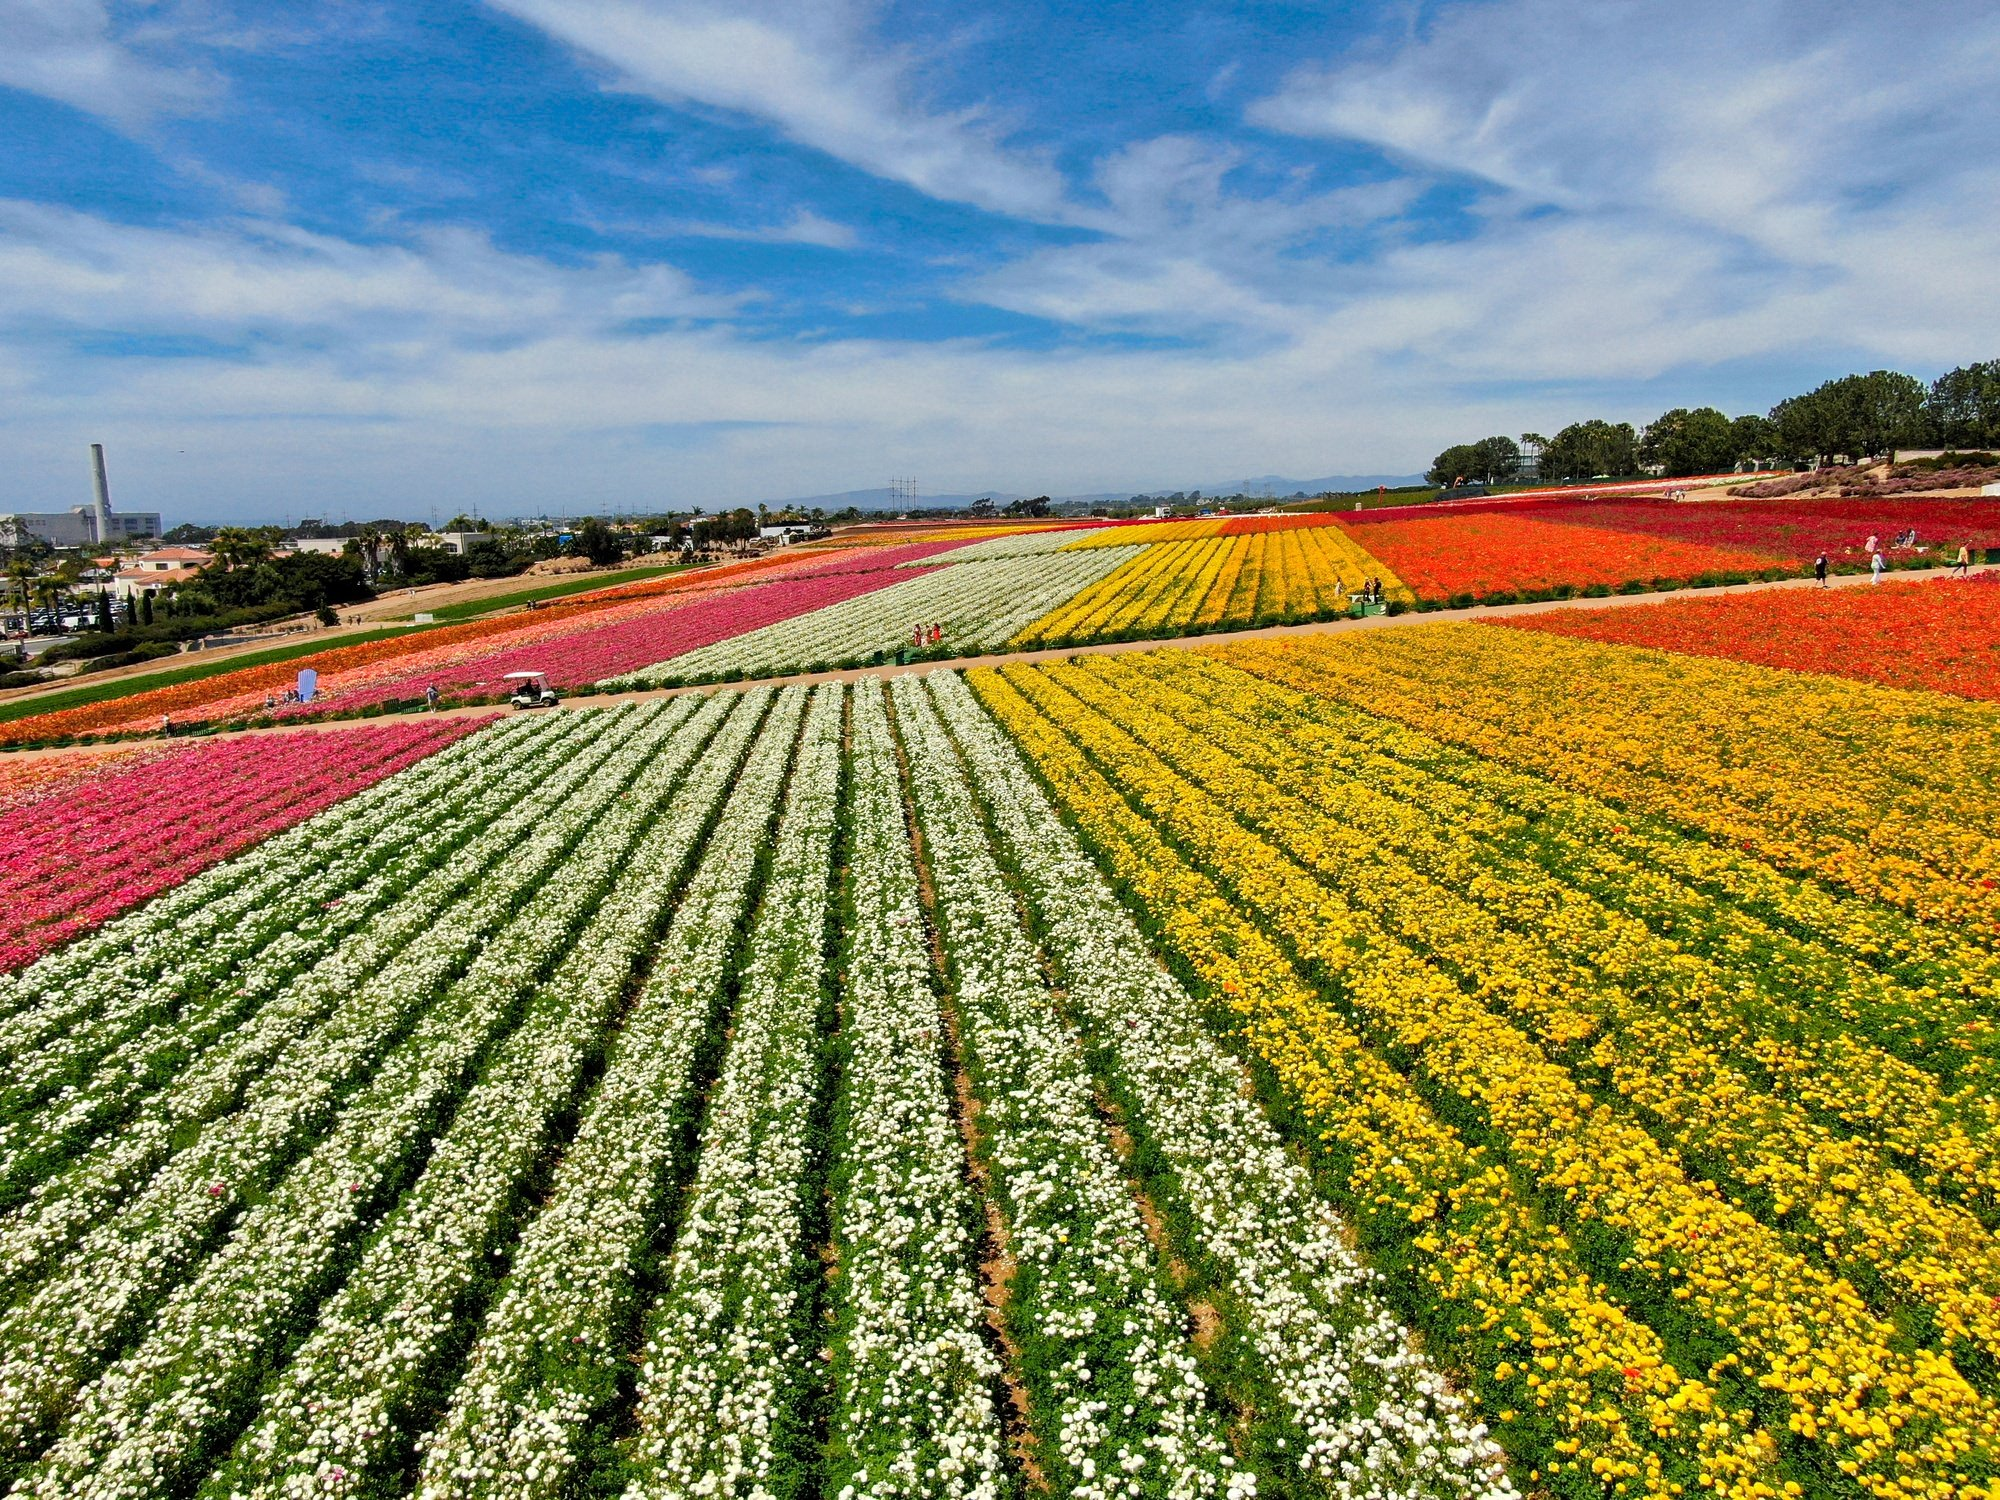 Carlsbad Flower Fields in San Diego County